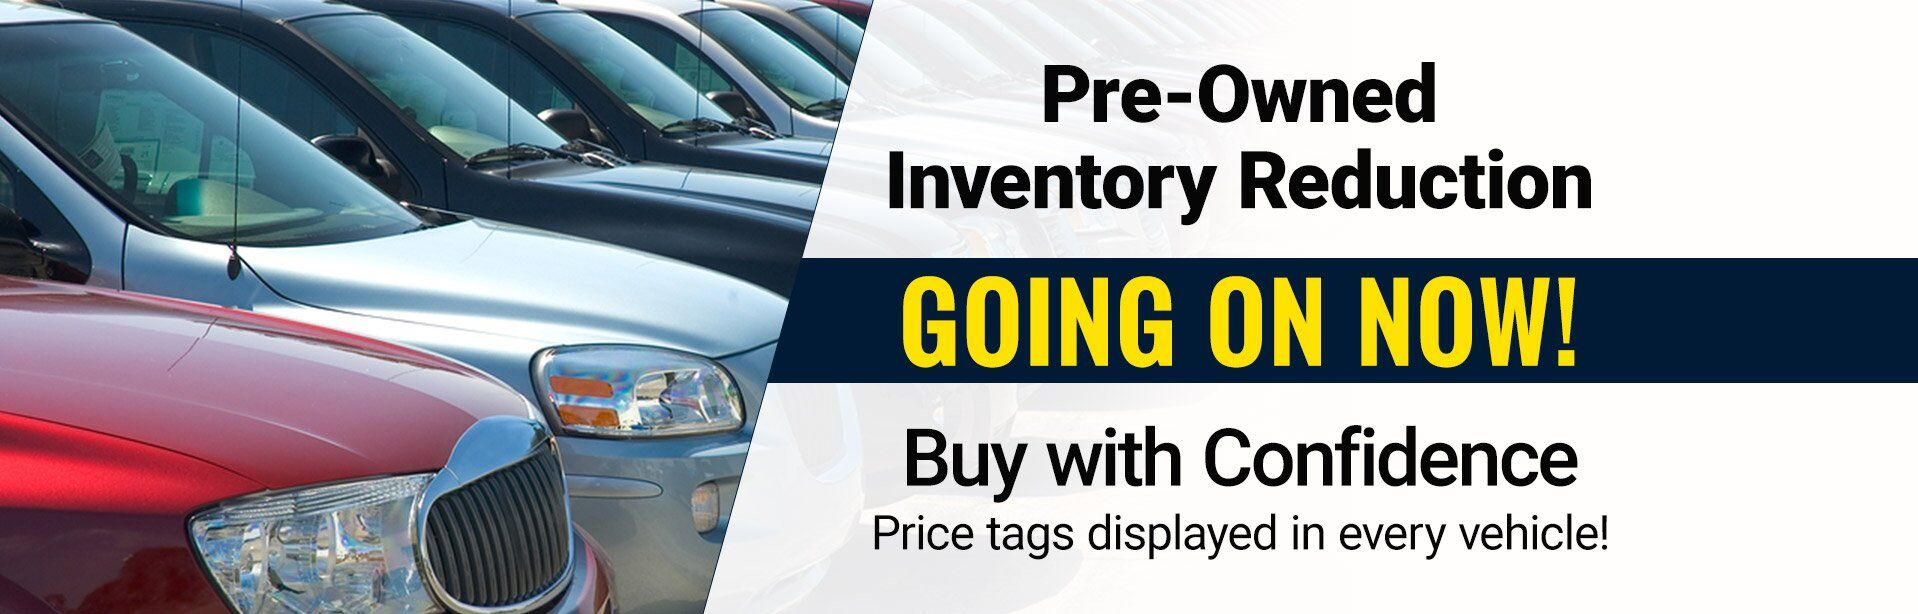 Pre Owned Inventory Reduction